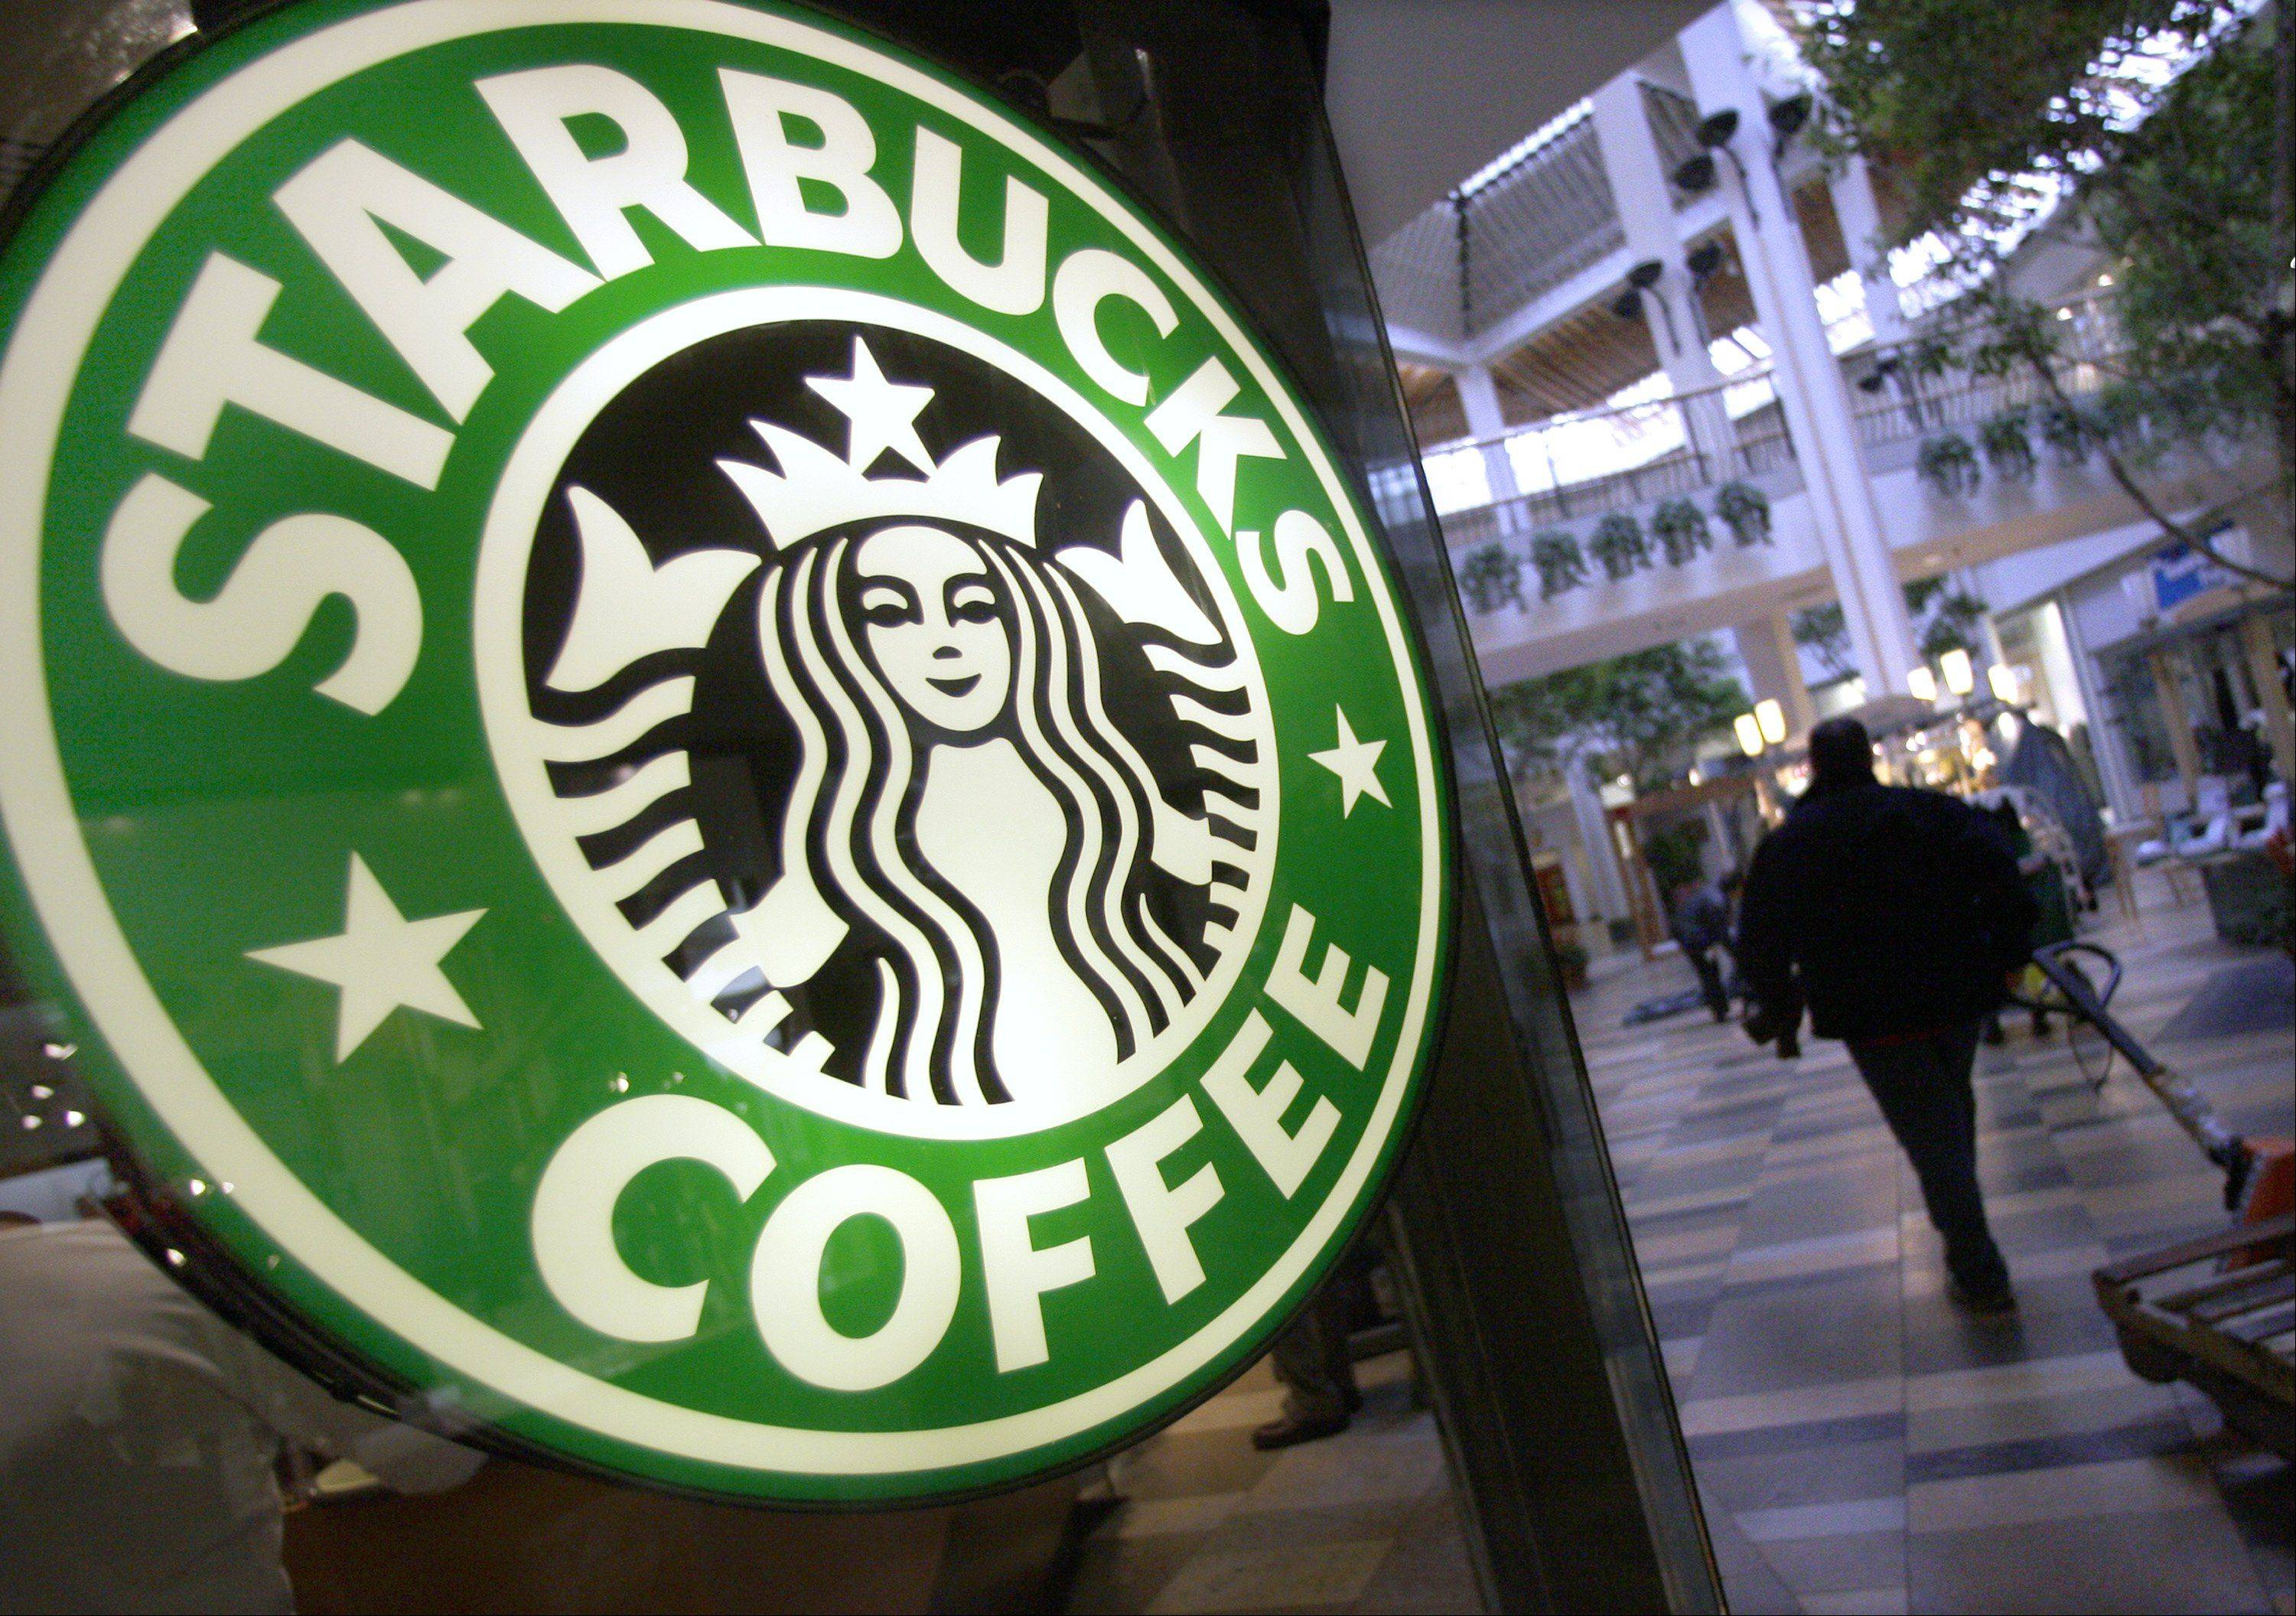 Starbucks says it plans to hire at least 10,000 veterans and military spouses over the next five years.